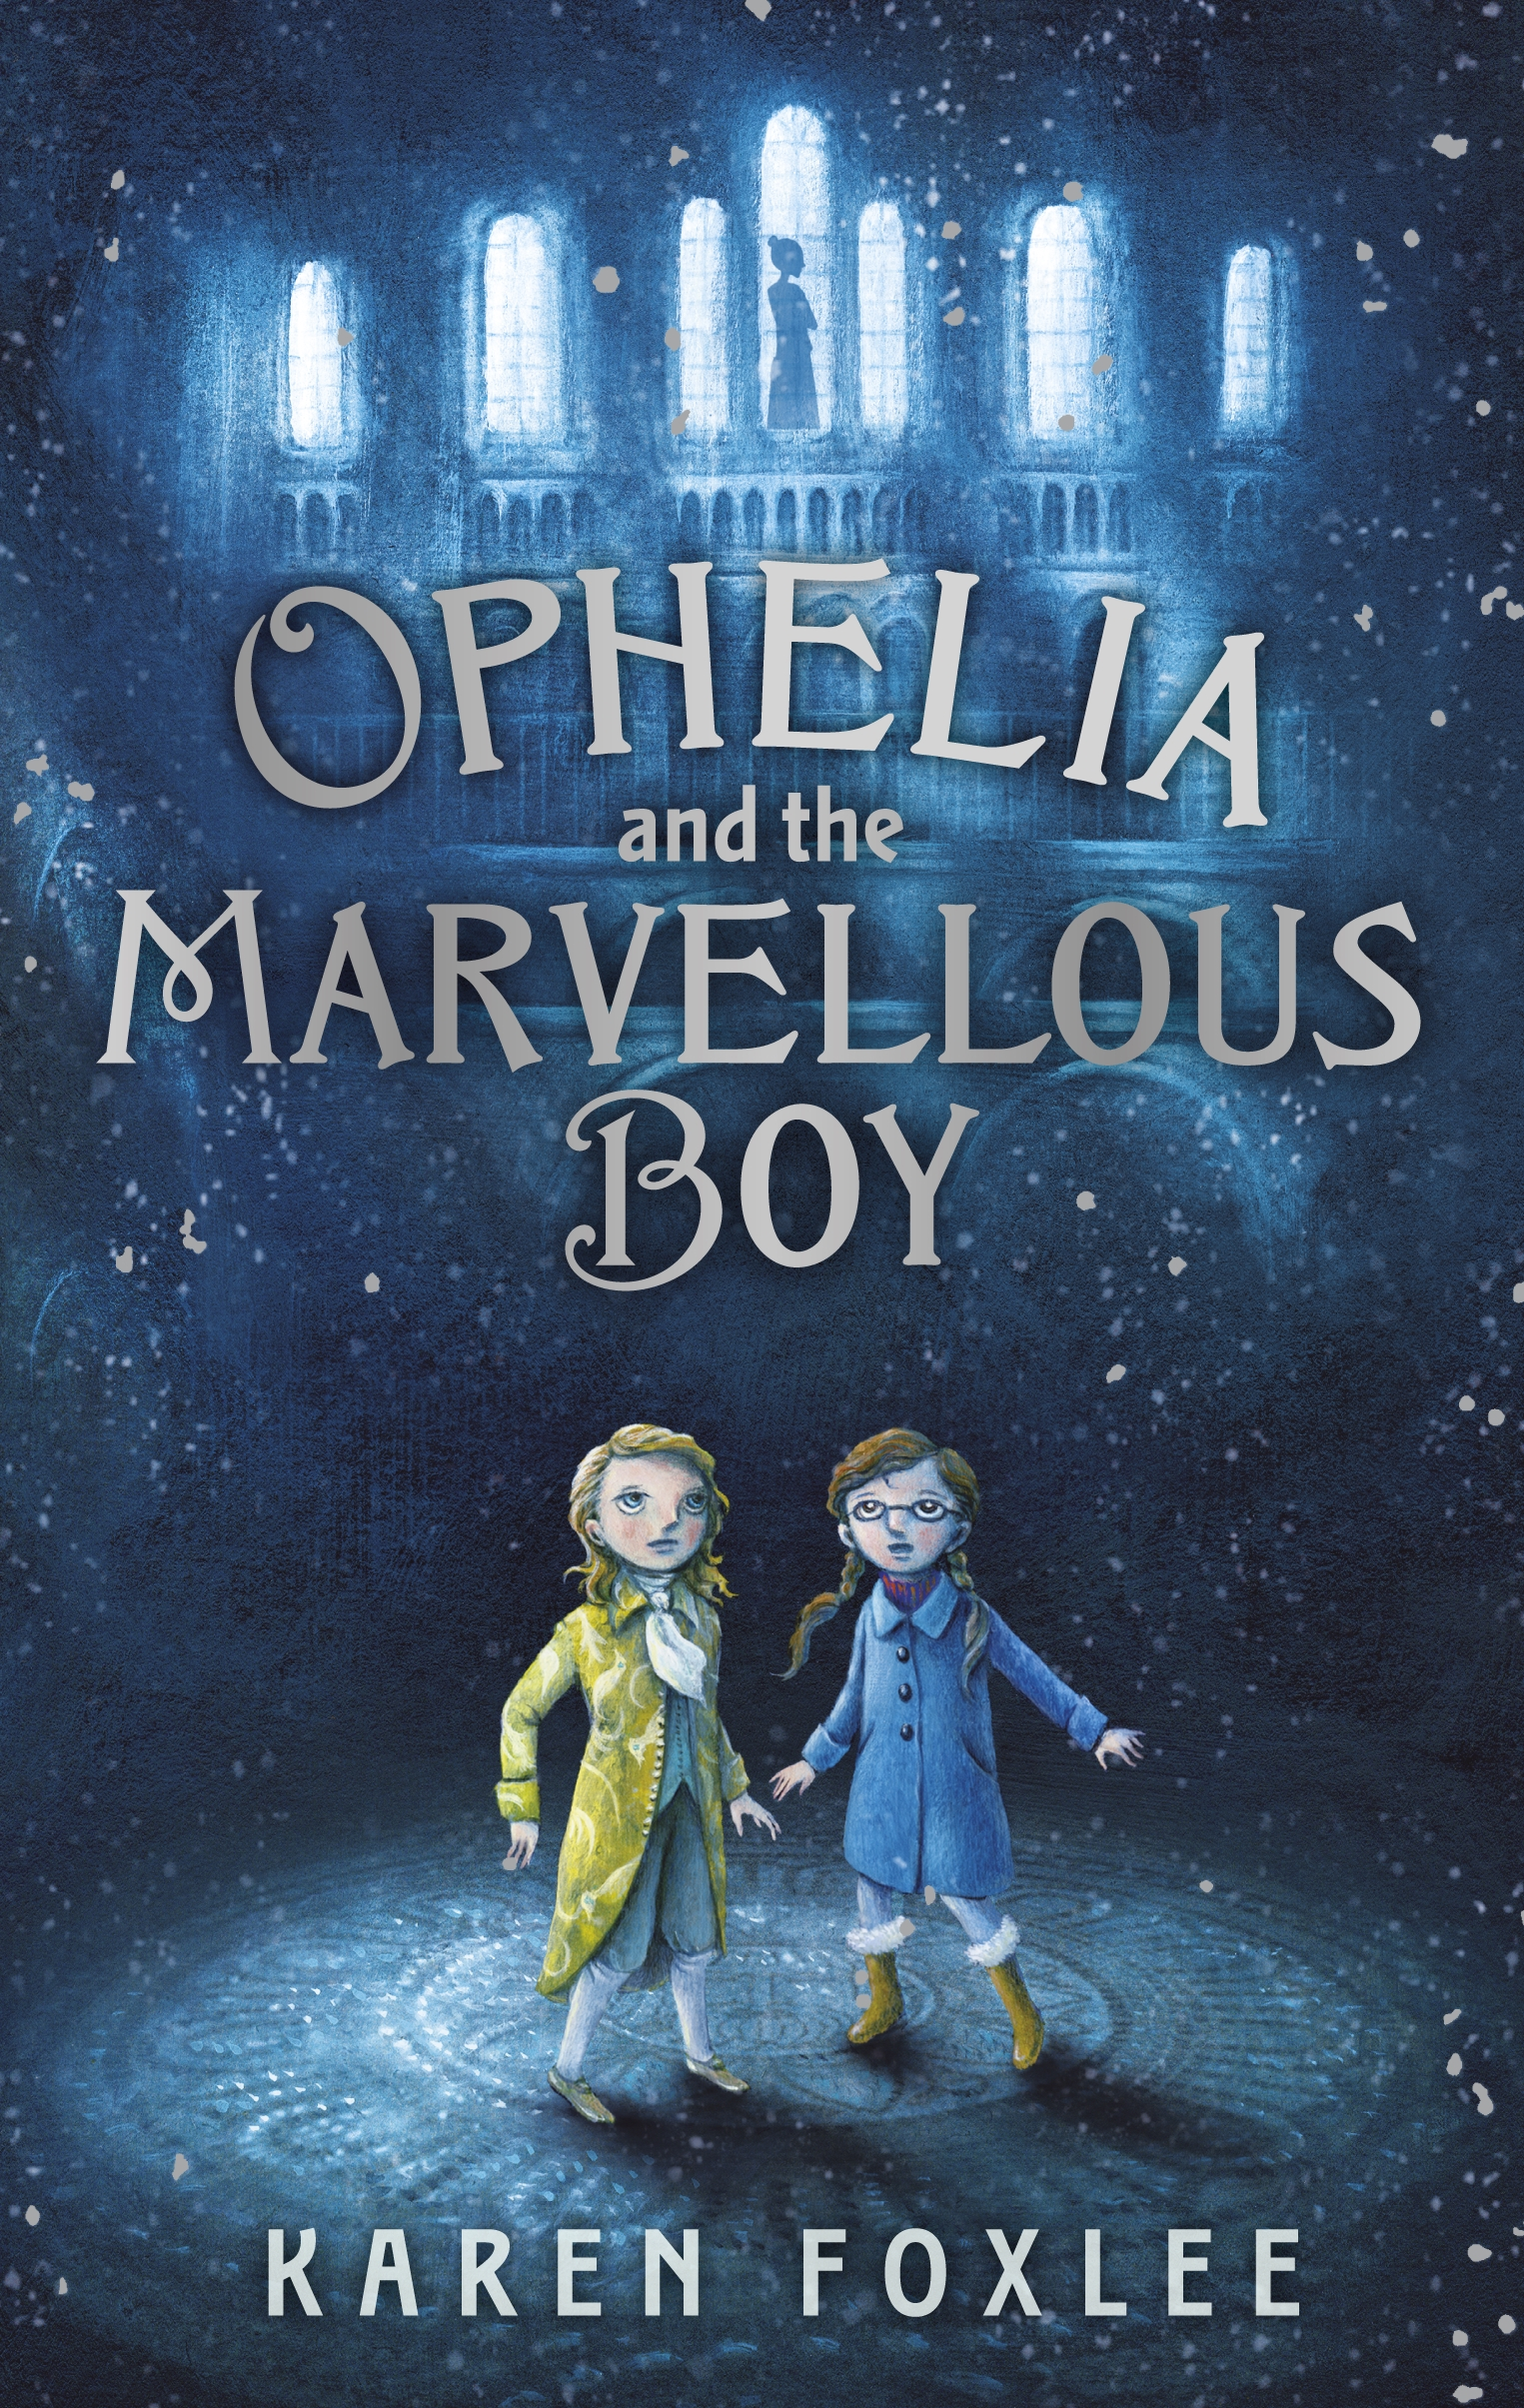 Ophelia and The Marvellous Boy by Karen Foxlee